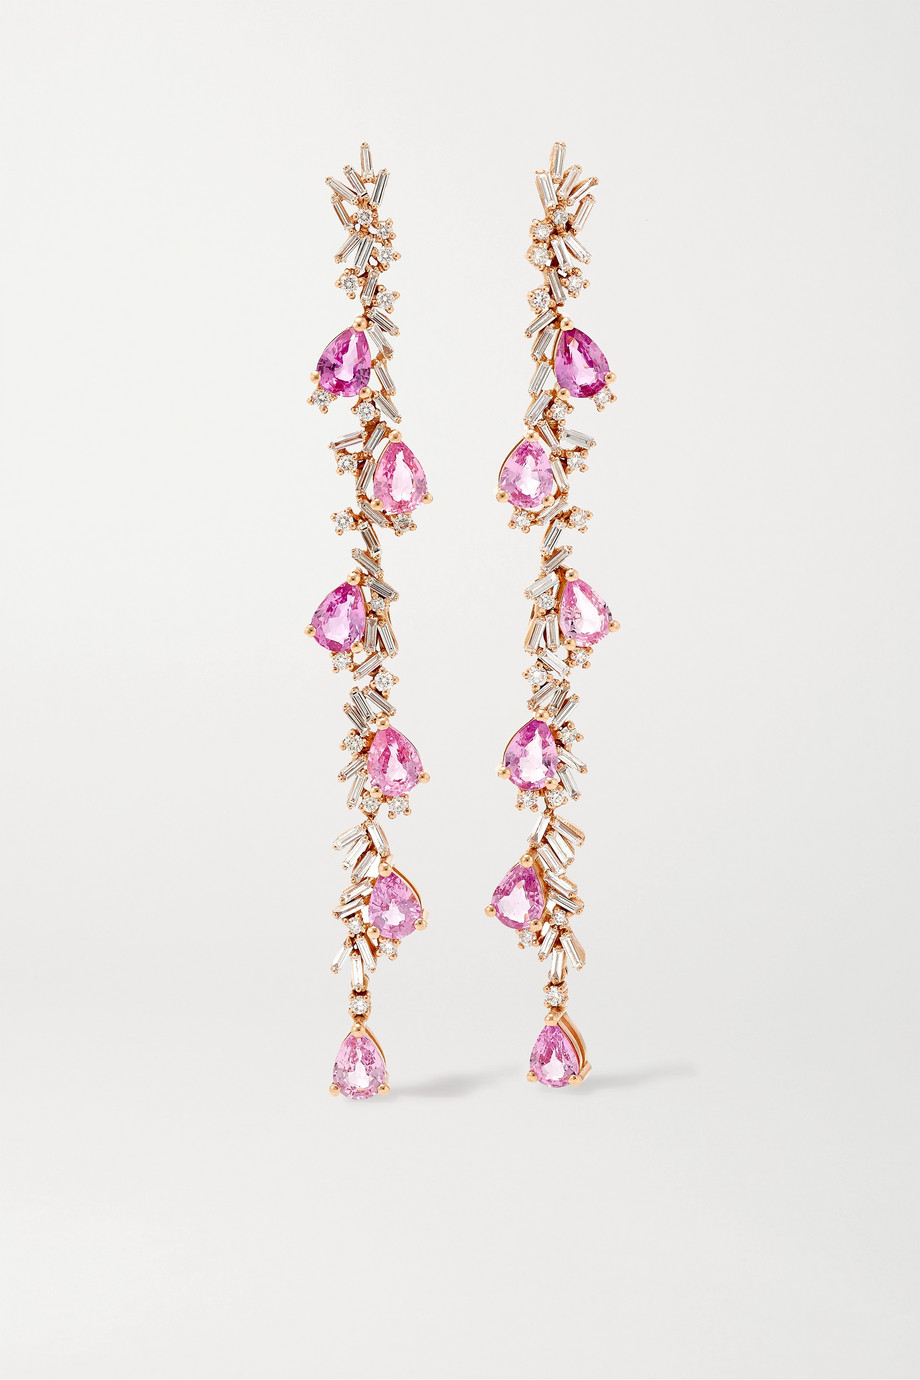 Suzanne Kalan Boucles d'oreilles en or rose 18 carats, diamants et saphirs